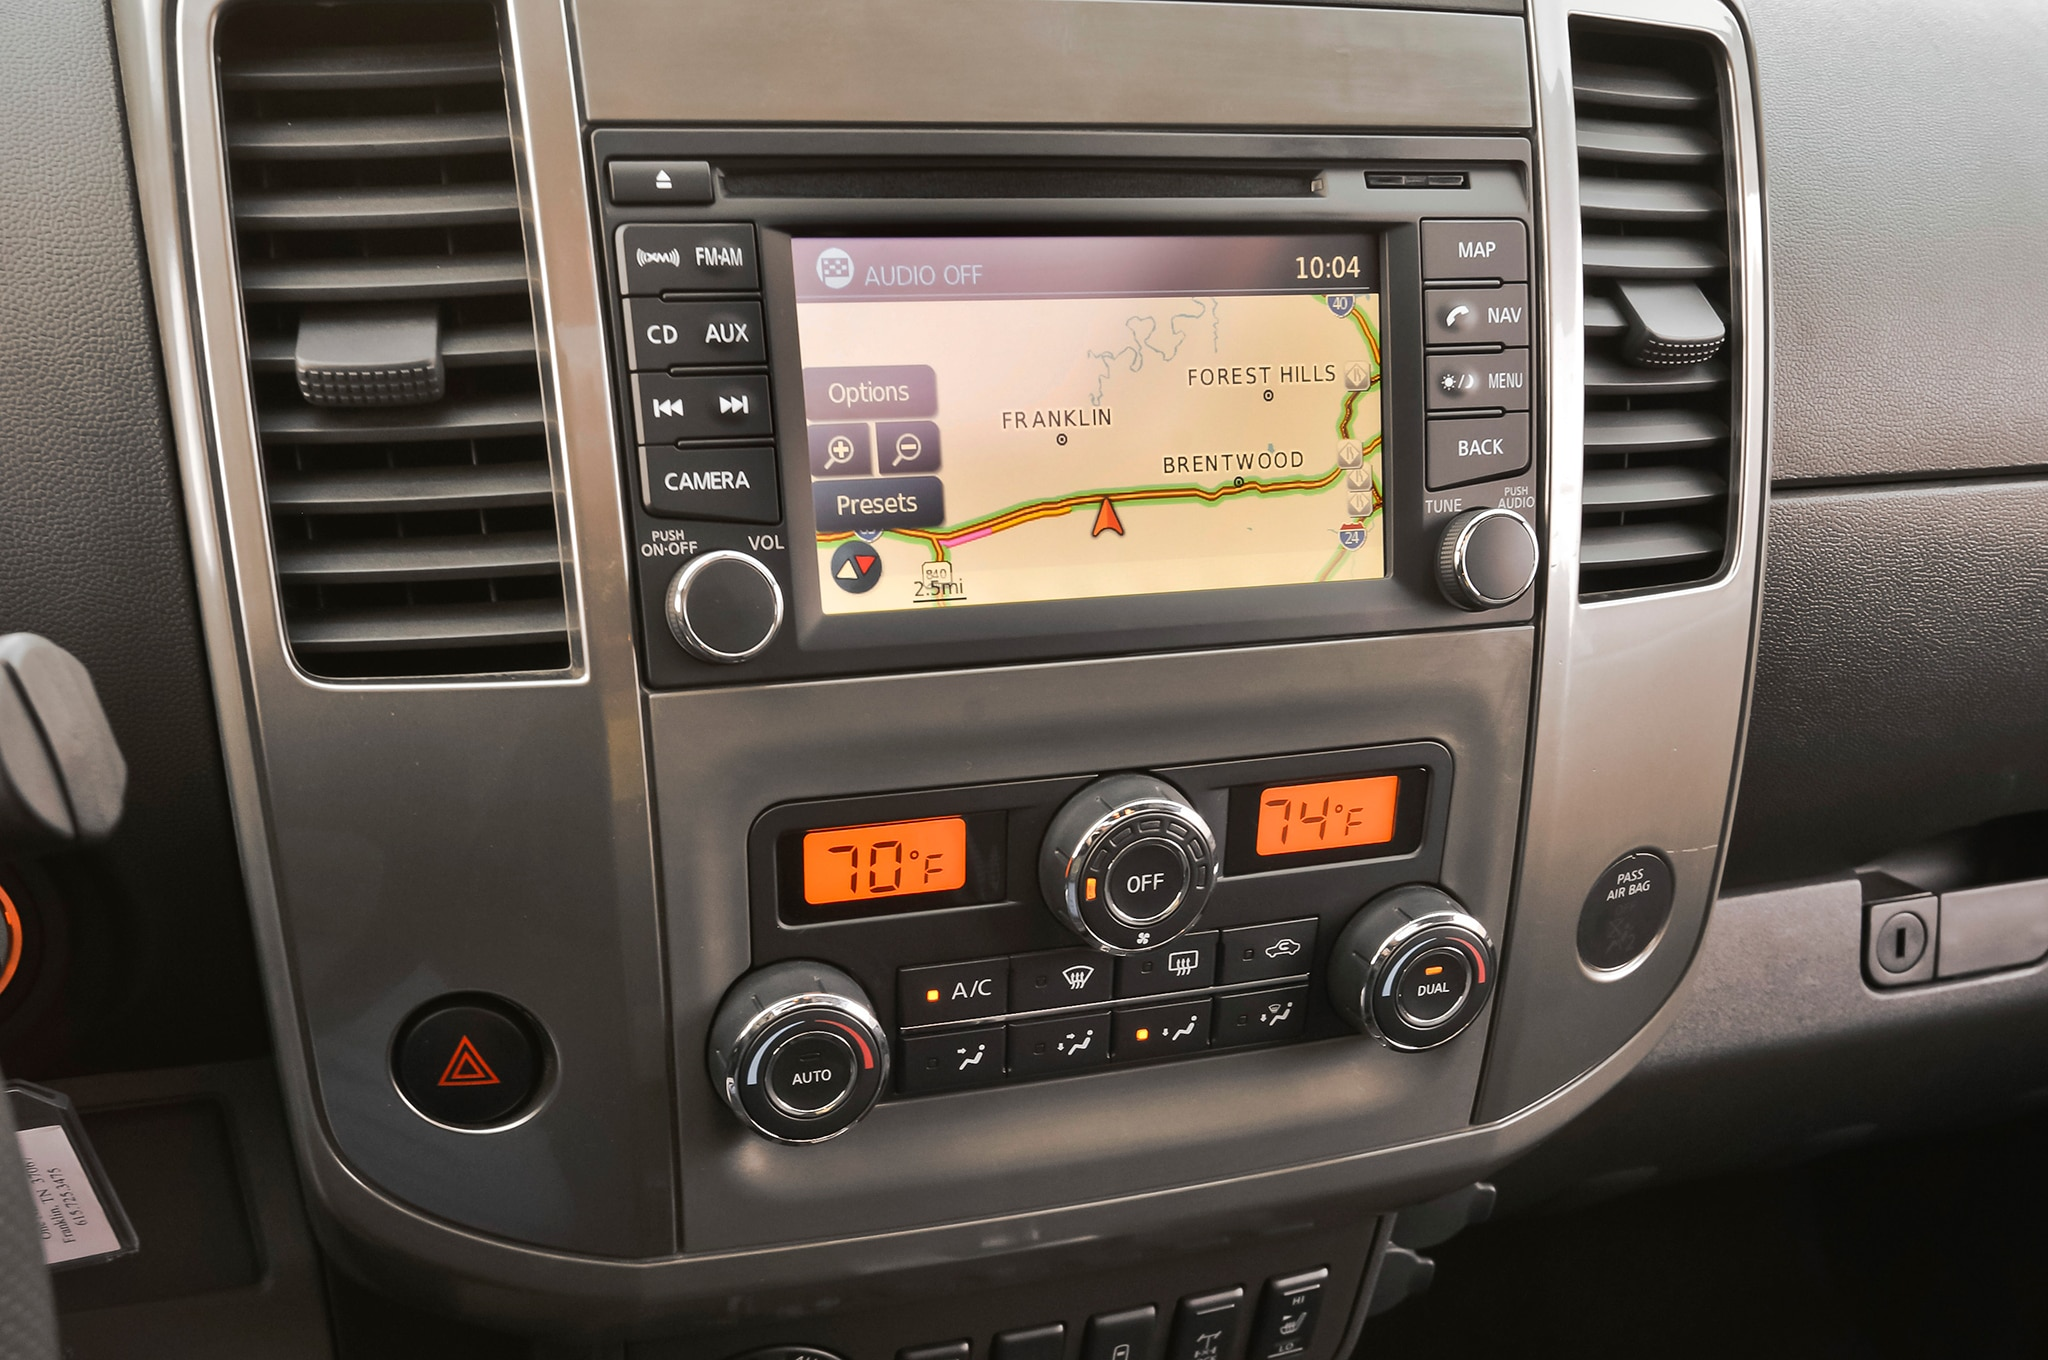 2001 nissan xterra radio wiring diagram the best wiring diagram 2017 100 2017 nissan xterra photos nissanhelp altima content atkins 1998 nissan frontier stereo wiring diagram cheapraybanclubmaster Image collections